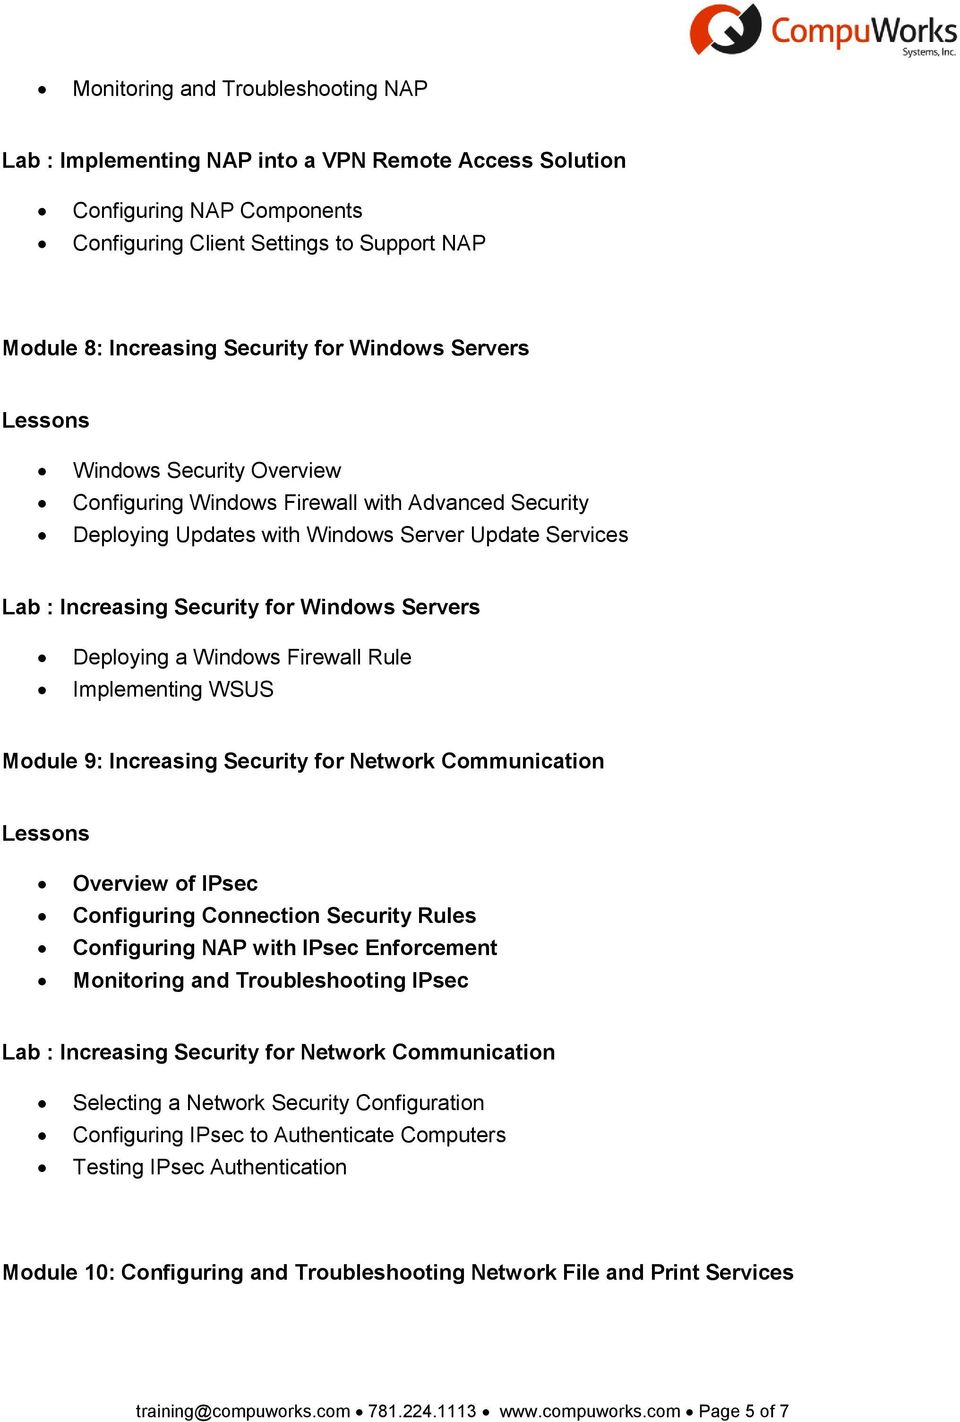 Deploying a Windows Firewall Rule Implementing WSUS Module 9: Increasing Security for Network Communication Overview of IPsec Configuring Connection Security Rules Configuring NAP with IPsec